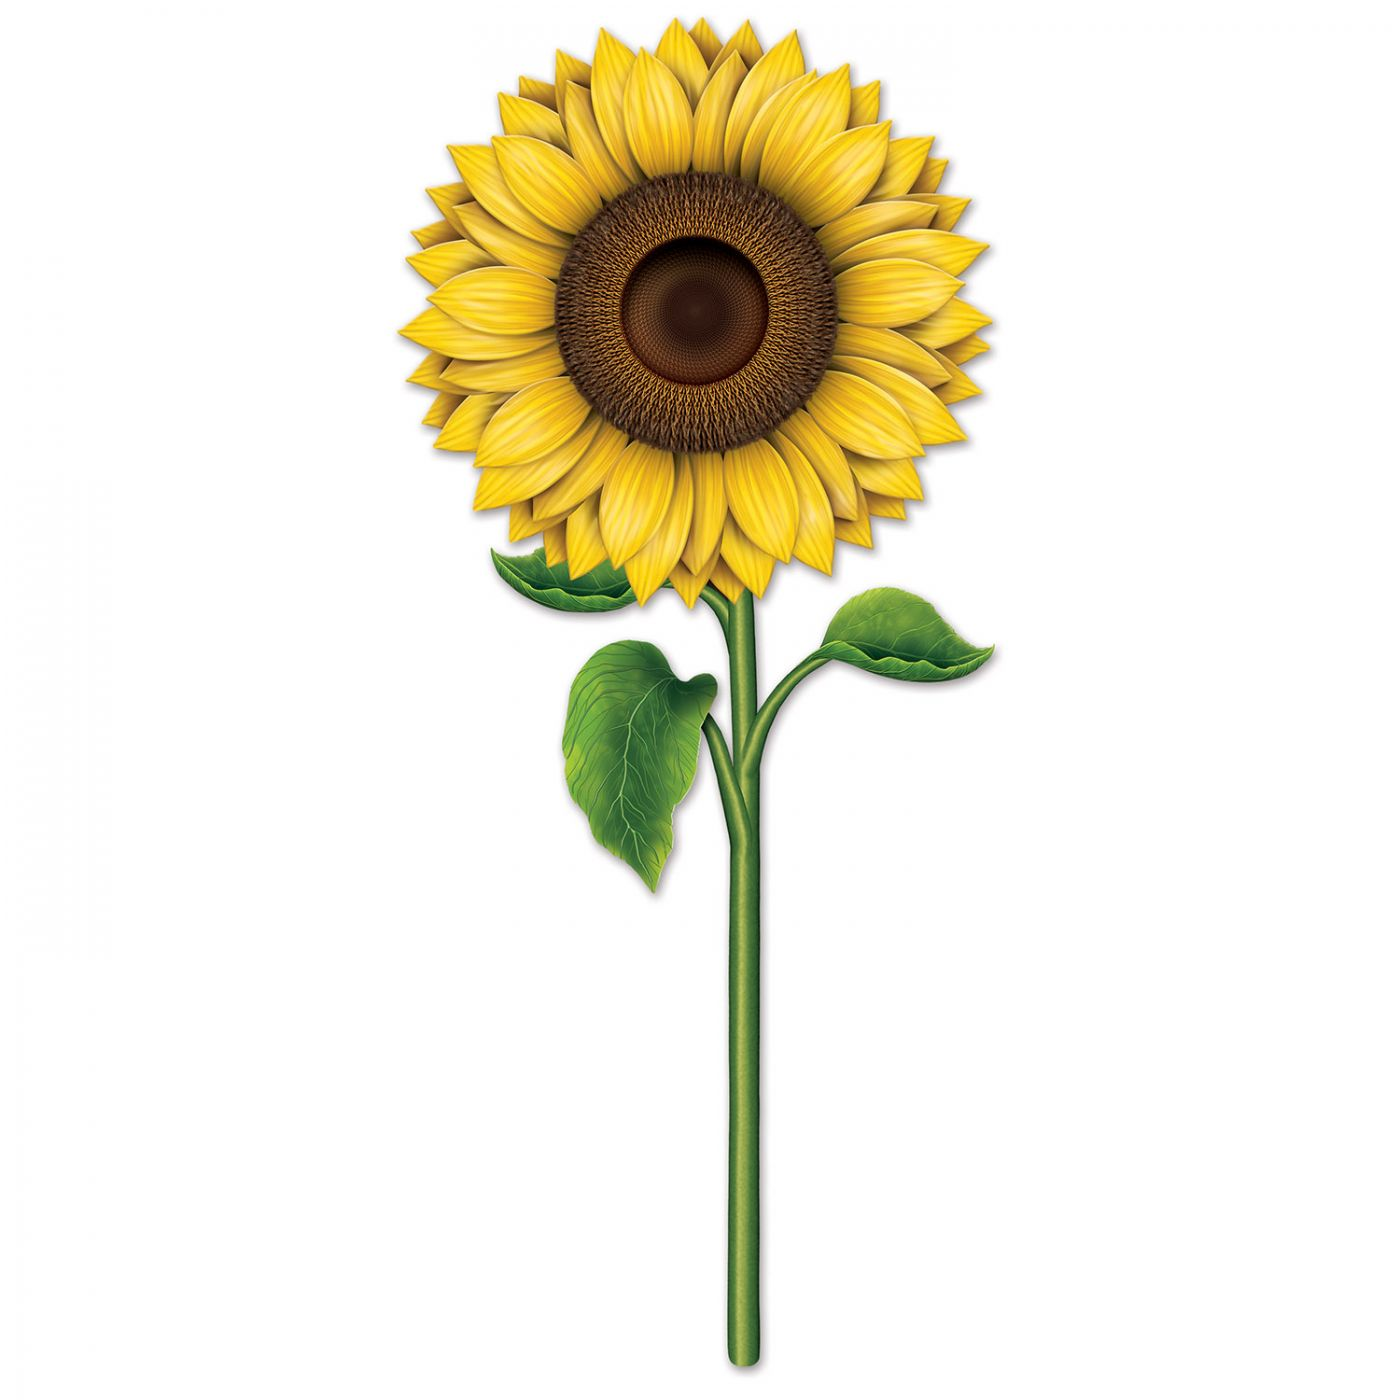 Sunflower Cutout image